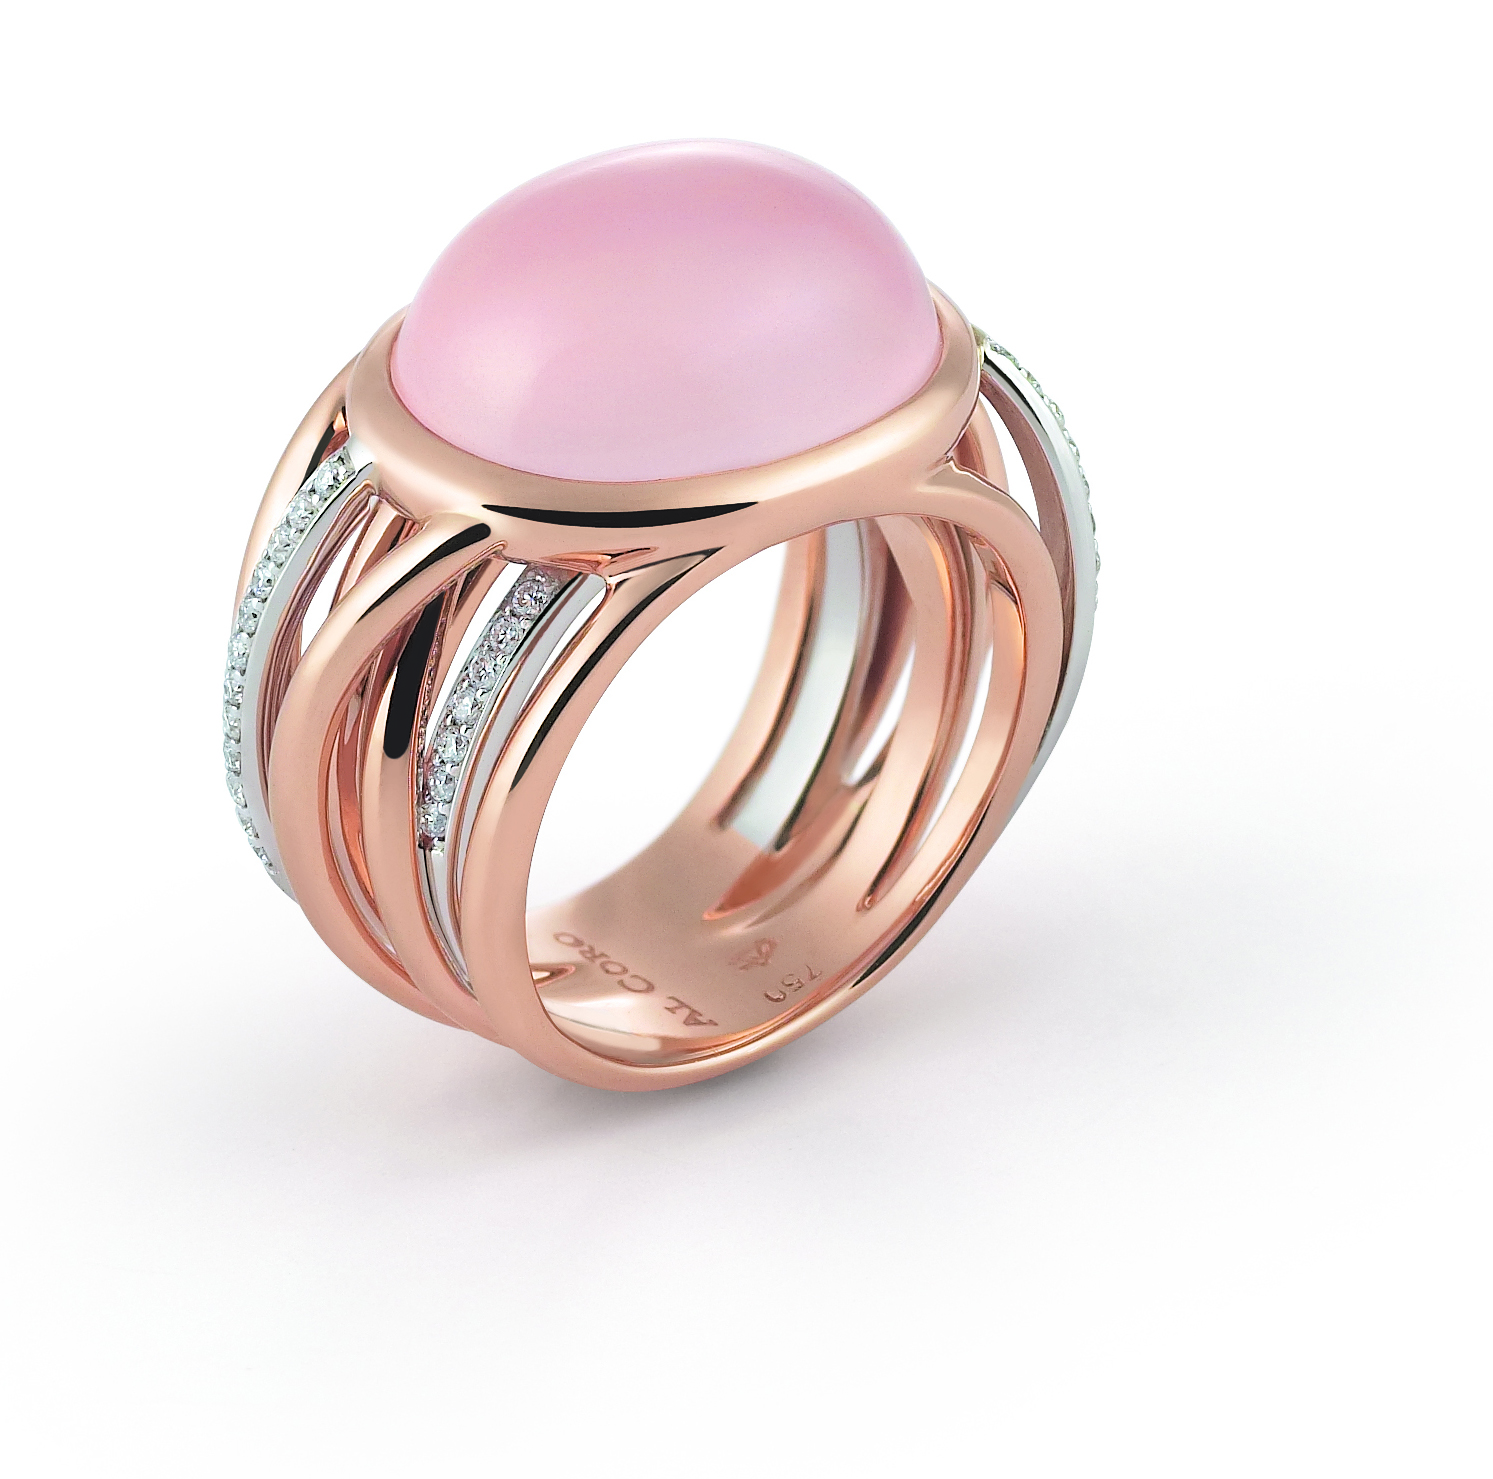 AlCoro-Serenata-R6973R-brilliant-kwarts-ring